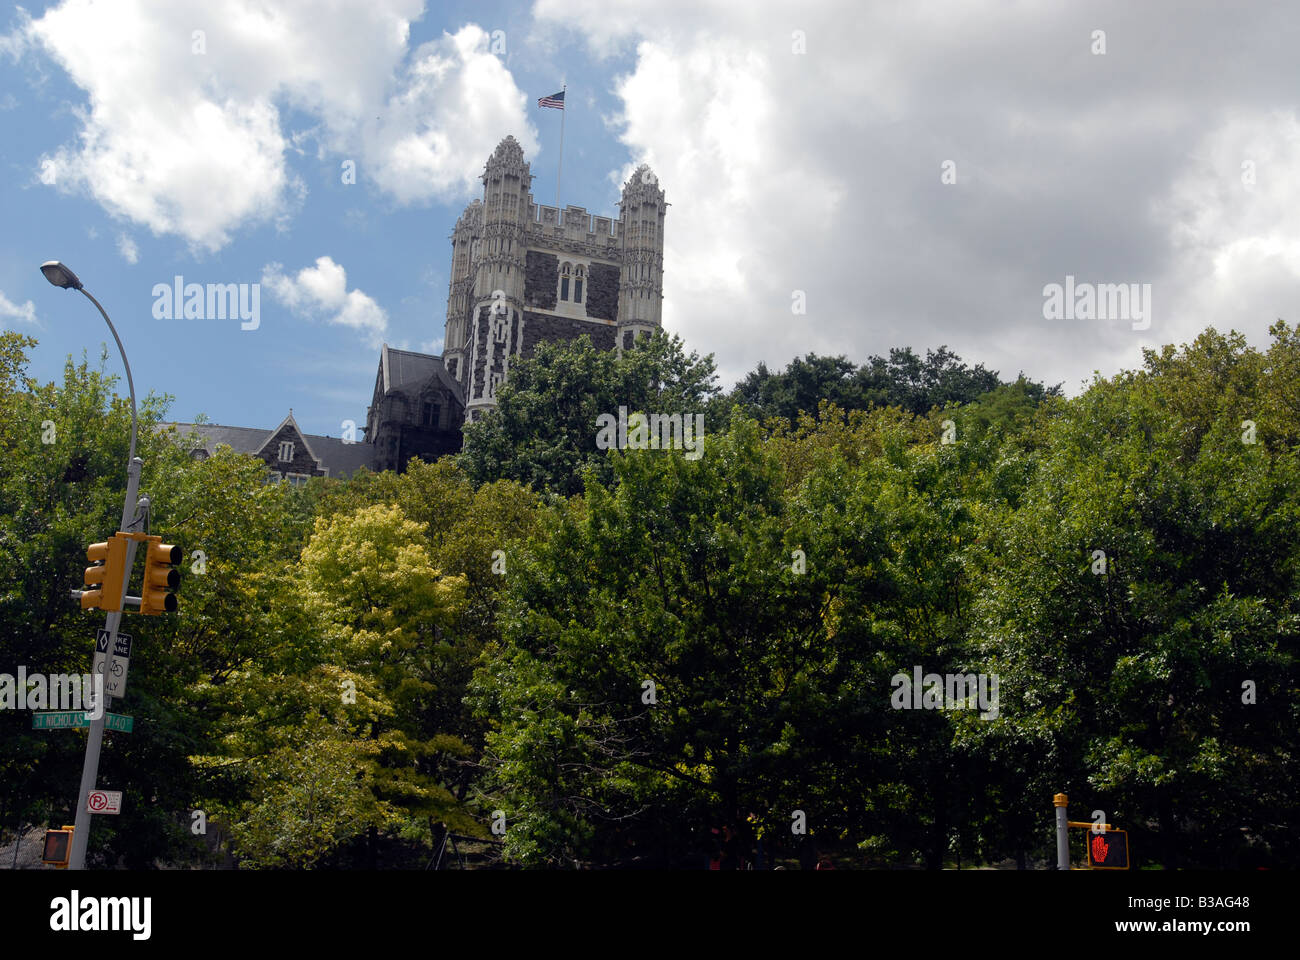 Shepard Hall of City College in Morningside Heights rises above Morningside Park in New York - Stock Image